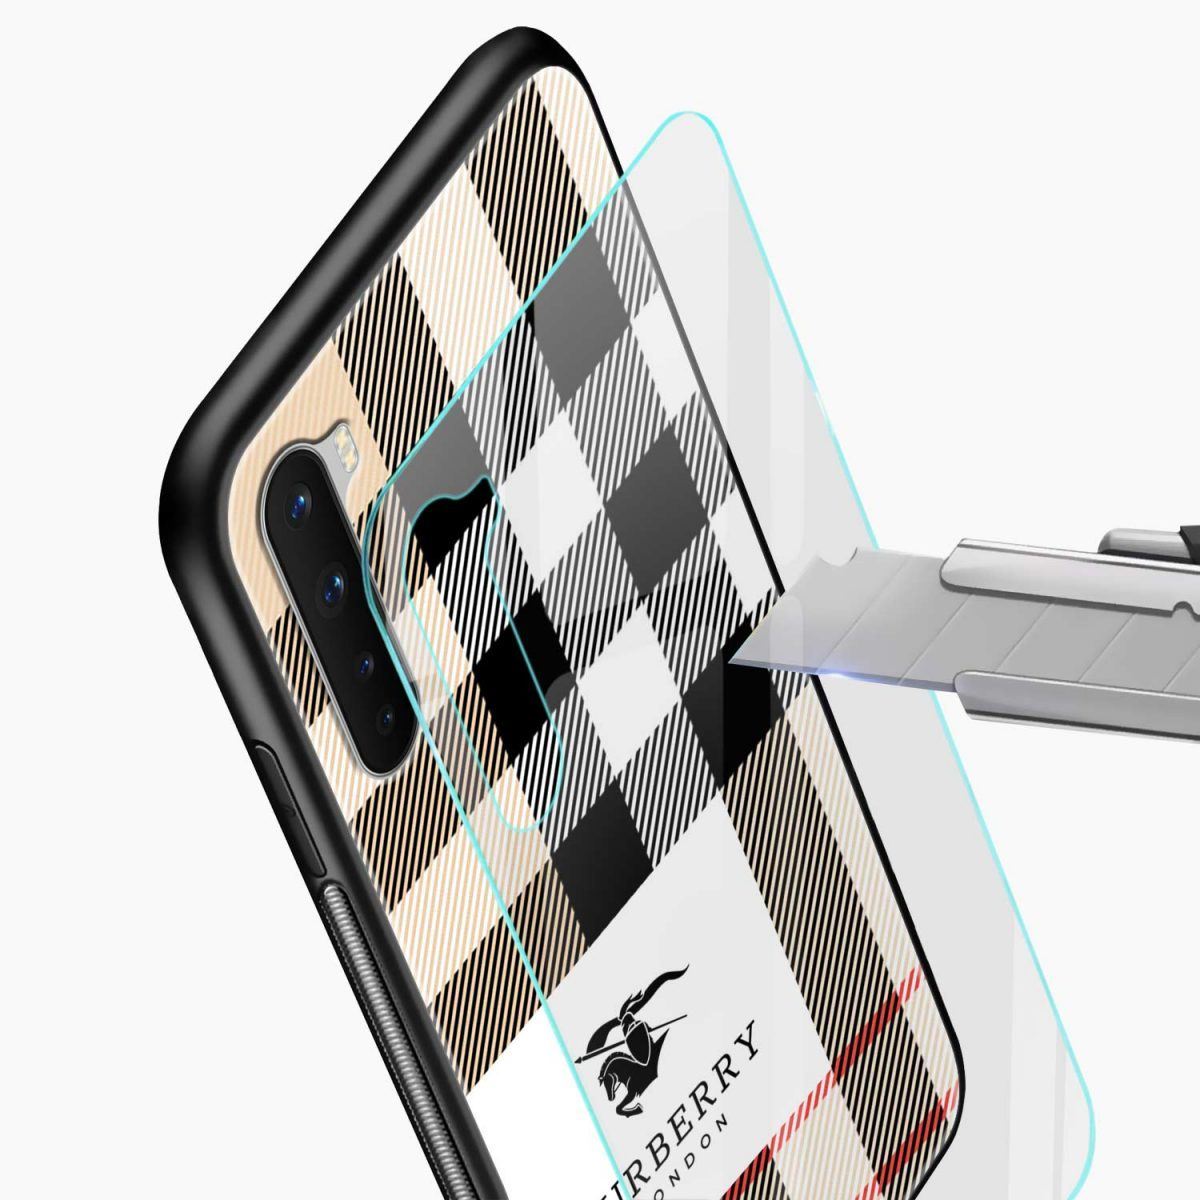 burberry cross lines pattern glass view oneplus nord back cover